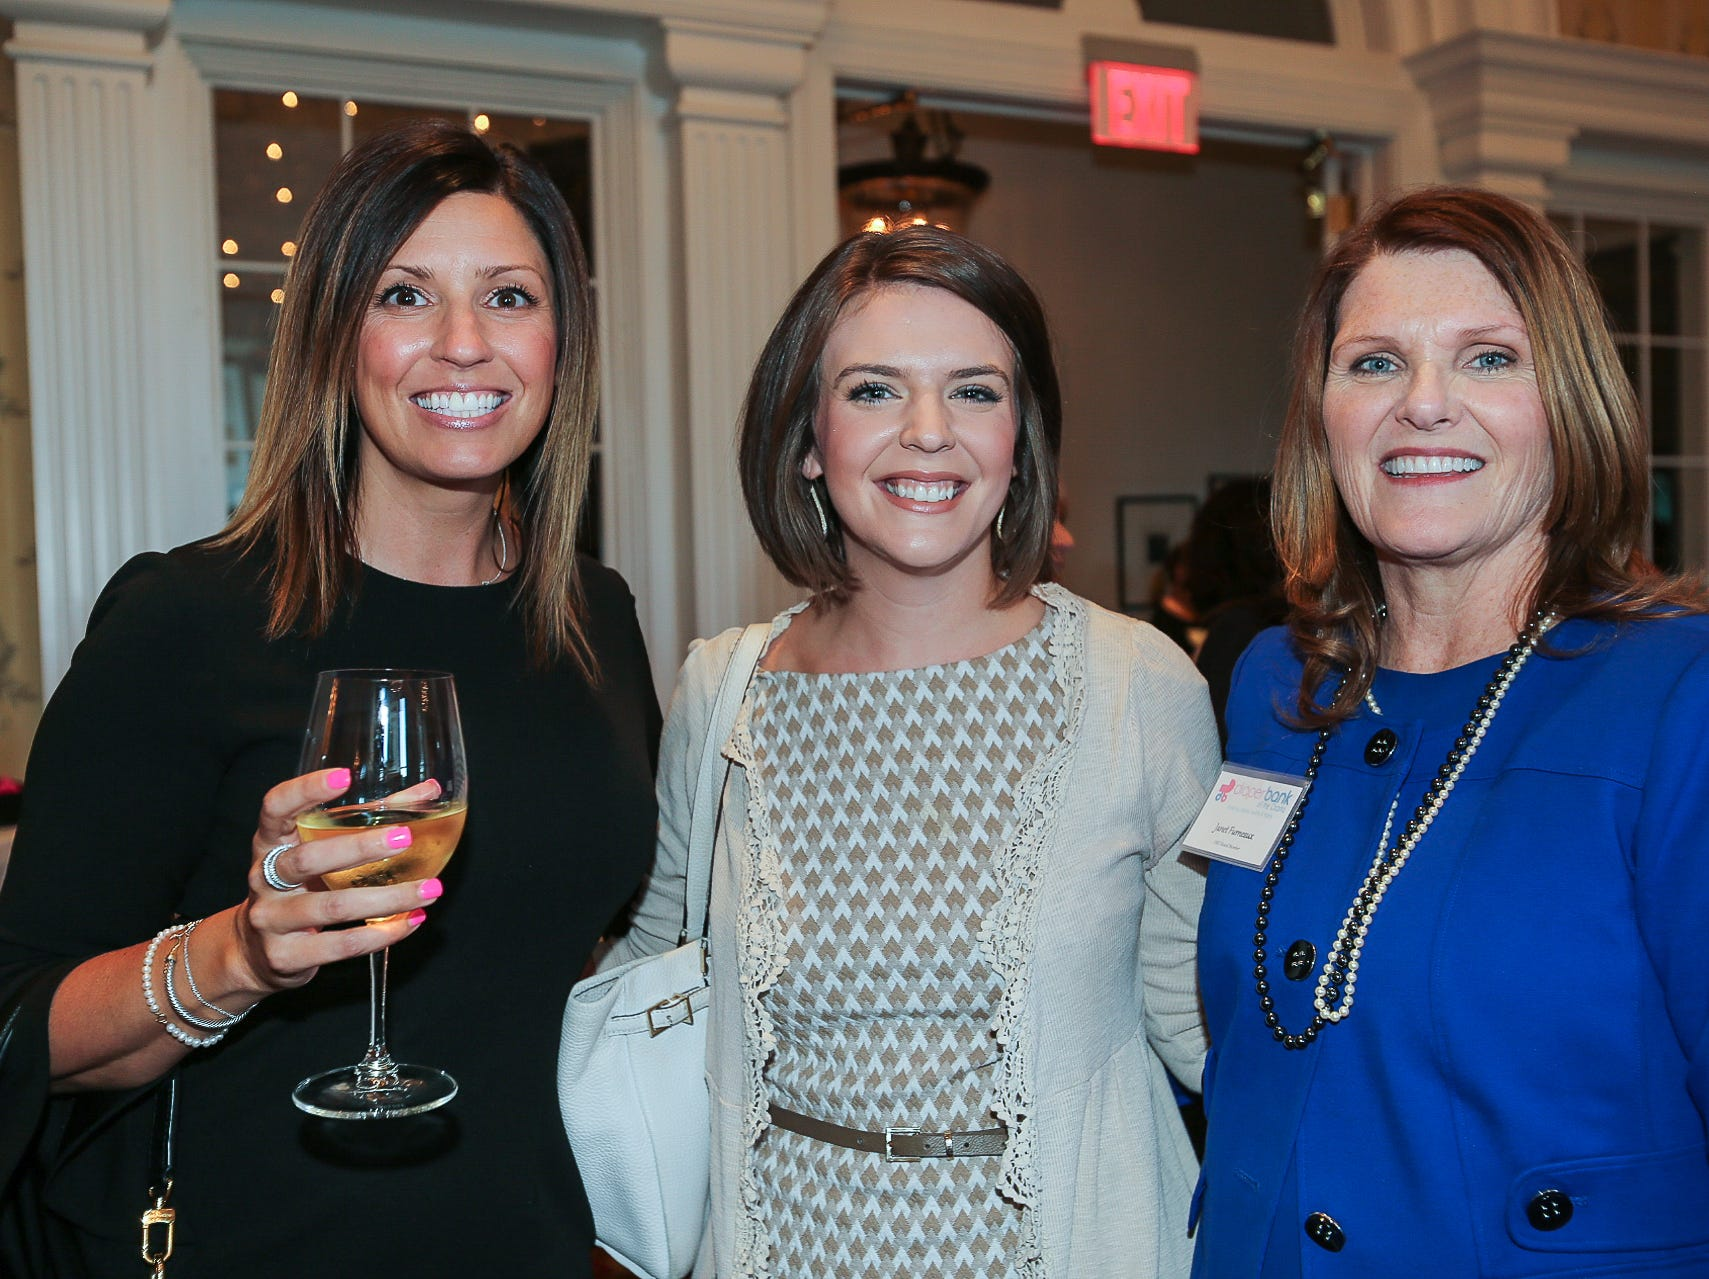 Erica Gaynor, Abby Dyer, and Janet Furneaux